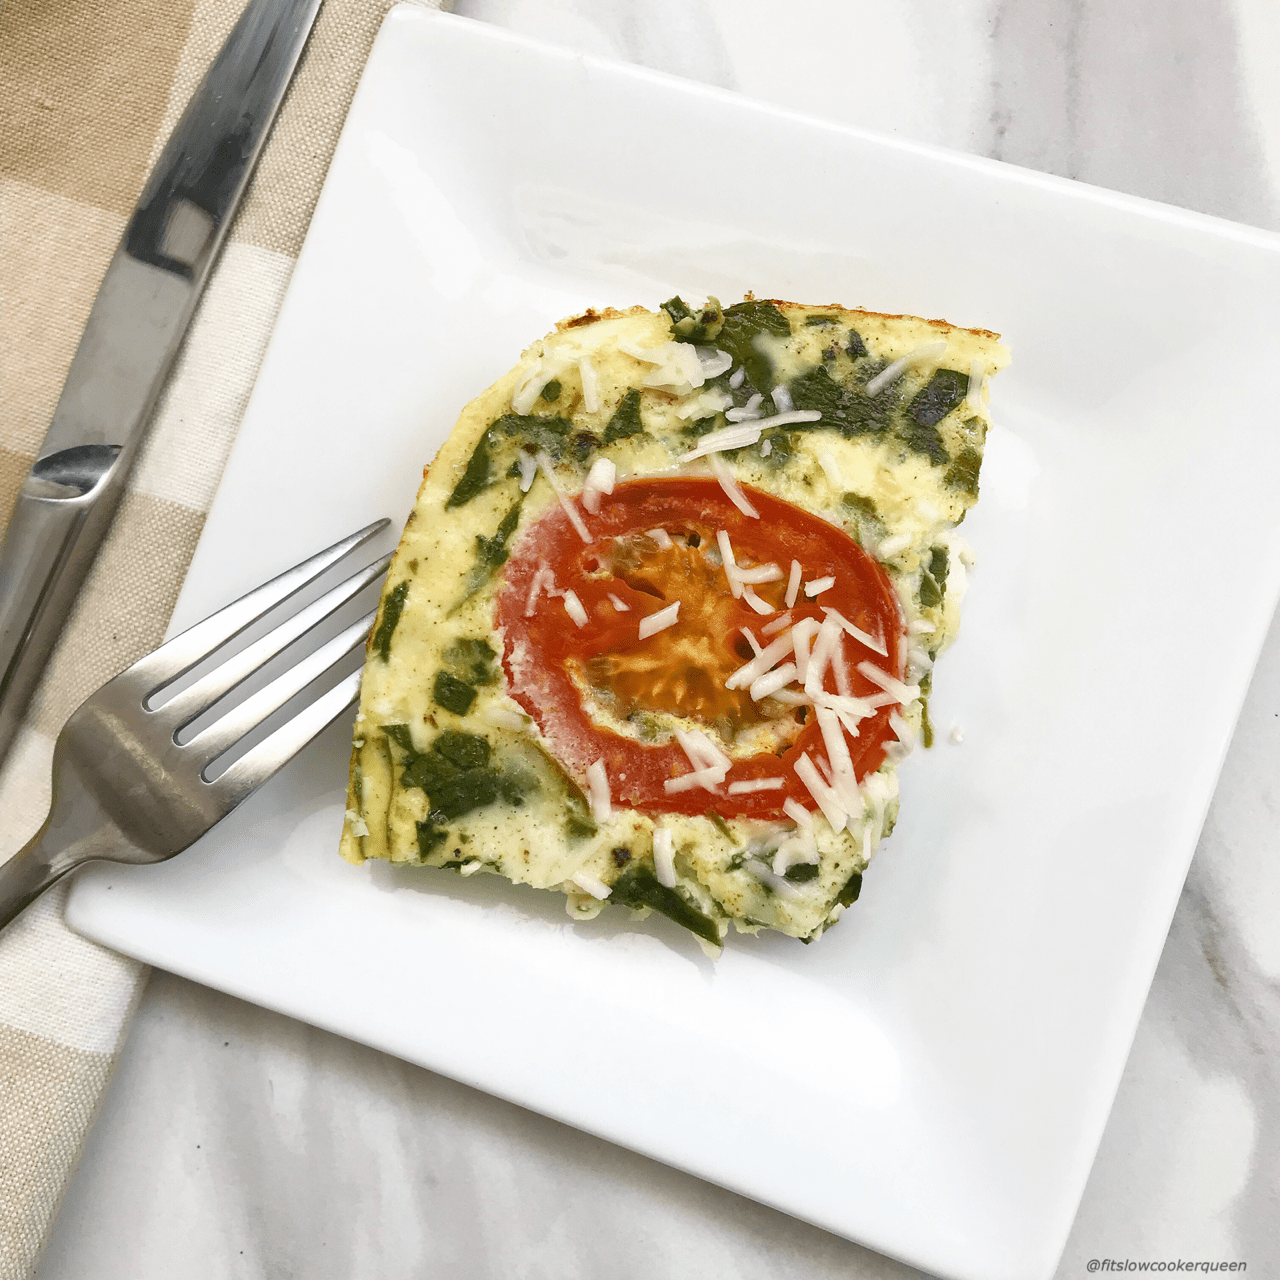 An egg white frittata is a great low-sodium, low-calorie, and low-carb breakfast or brunch option. Load this frittata up with your favorite vegetables and cook it overnight in the slow cooker to wake up to an easy & healthy vegetarian breakfast.